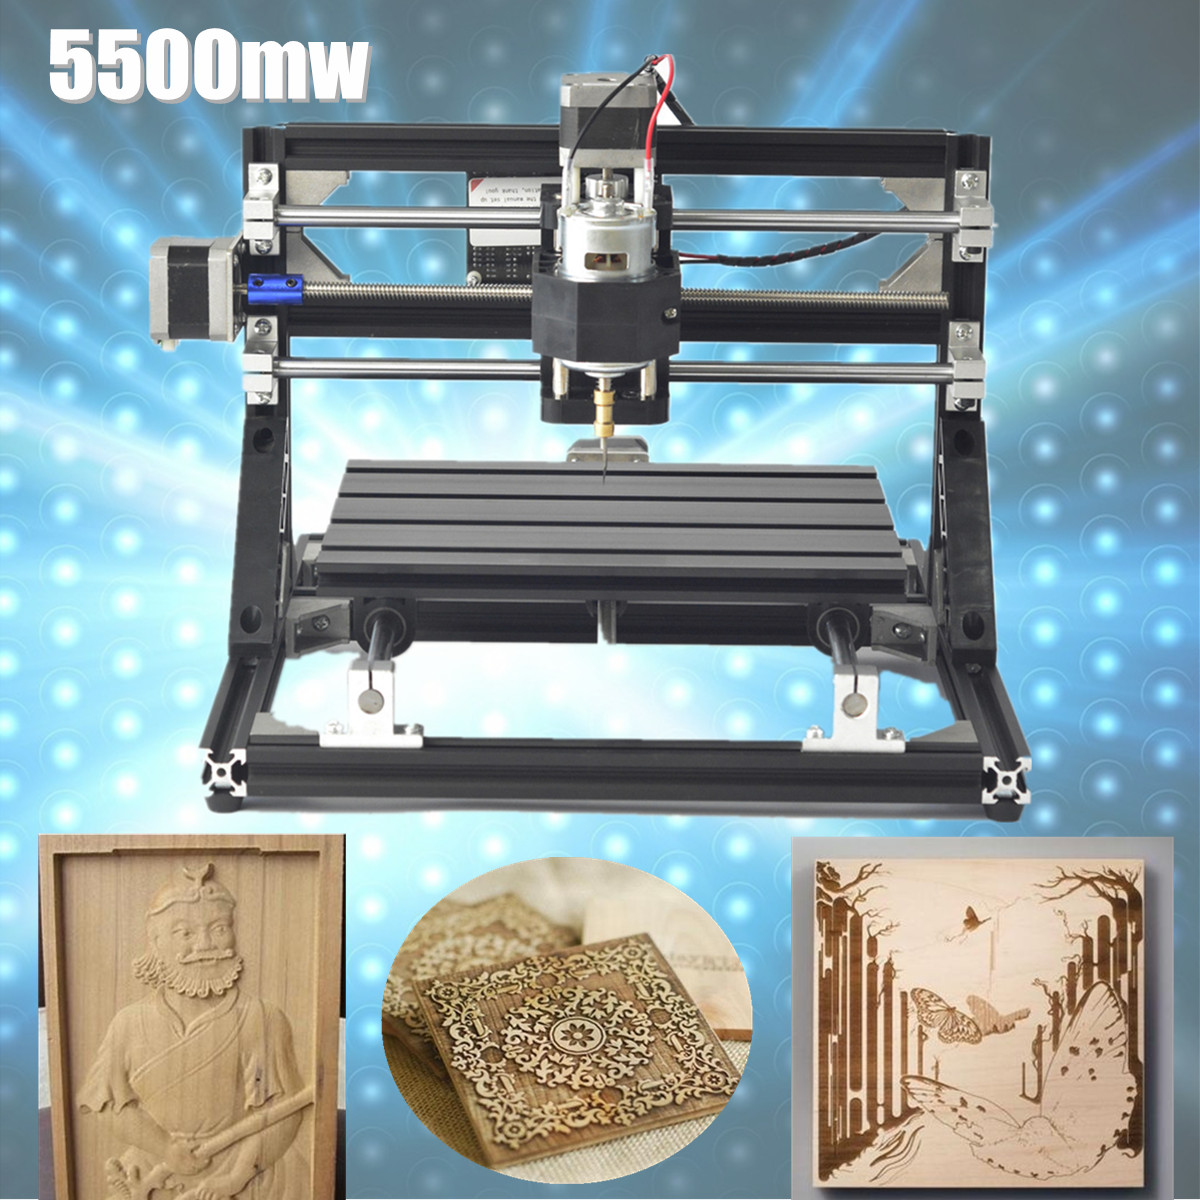 110V -240V 5500mW Laser Head CNC 3018 Engraving Machine Wood Router Carving Woodworking Machinery цена